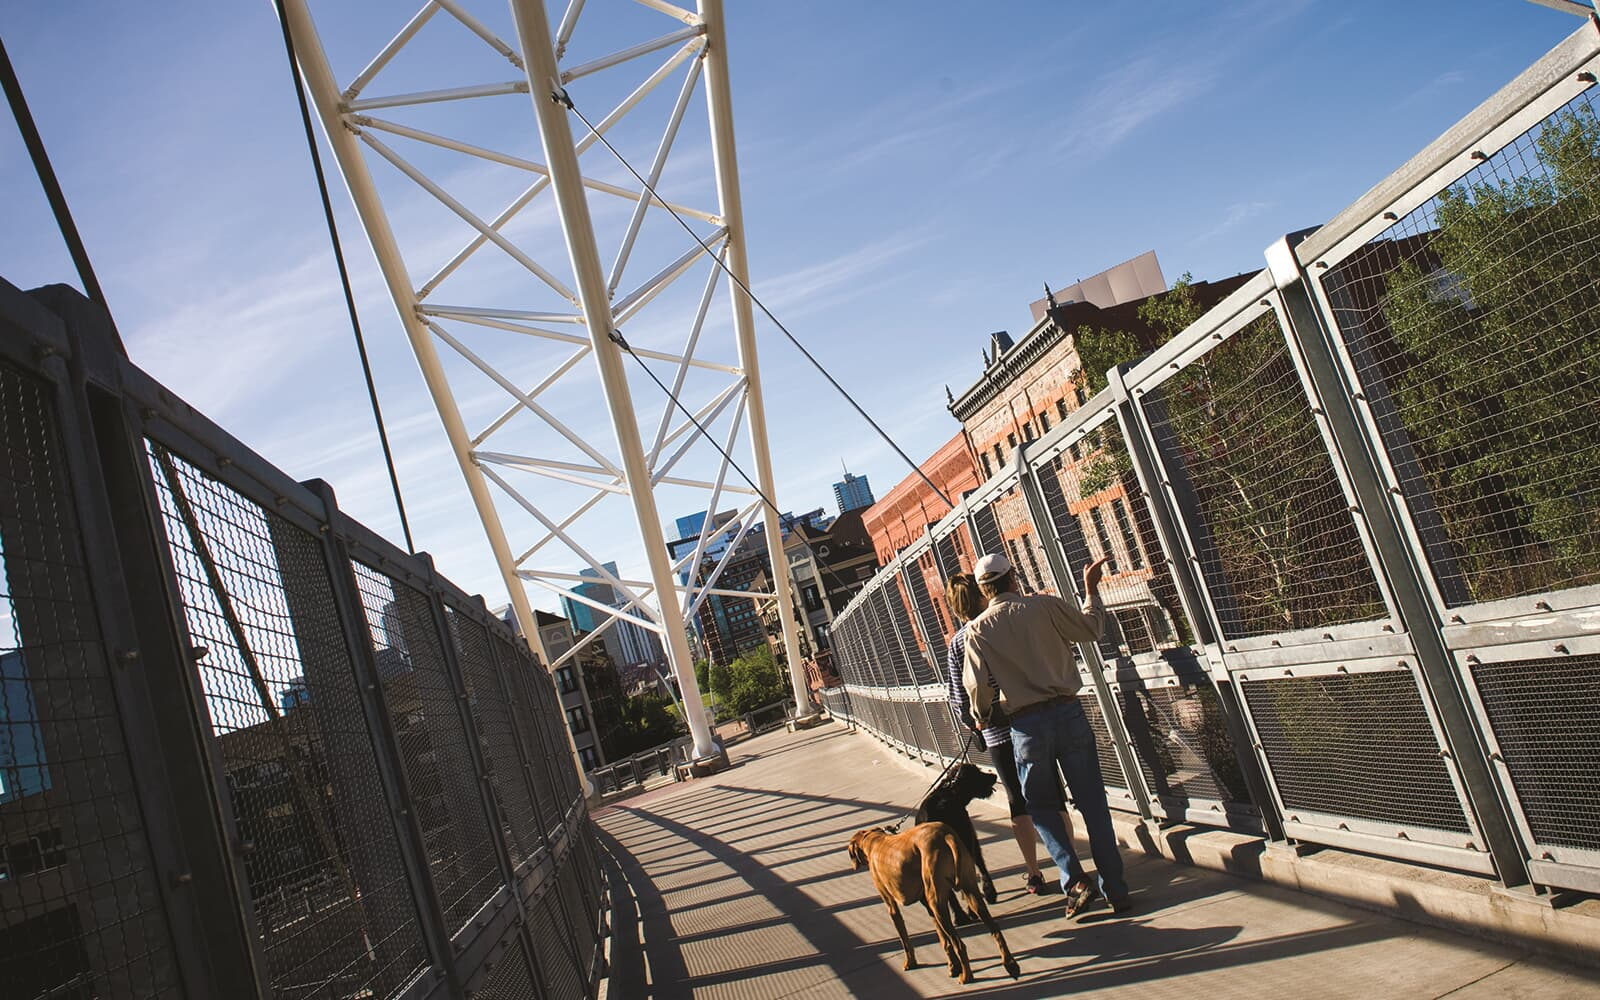 LoHi-Pedestrian-Bridge-Lifestyle-Midtown-Denver-Colorado